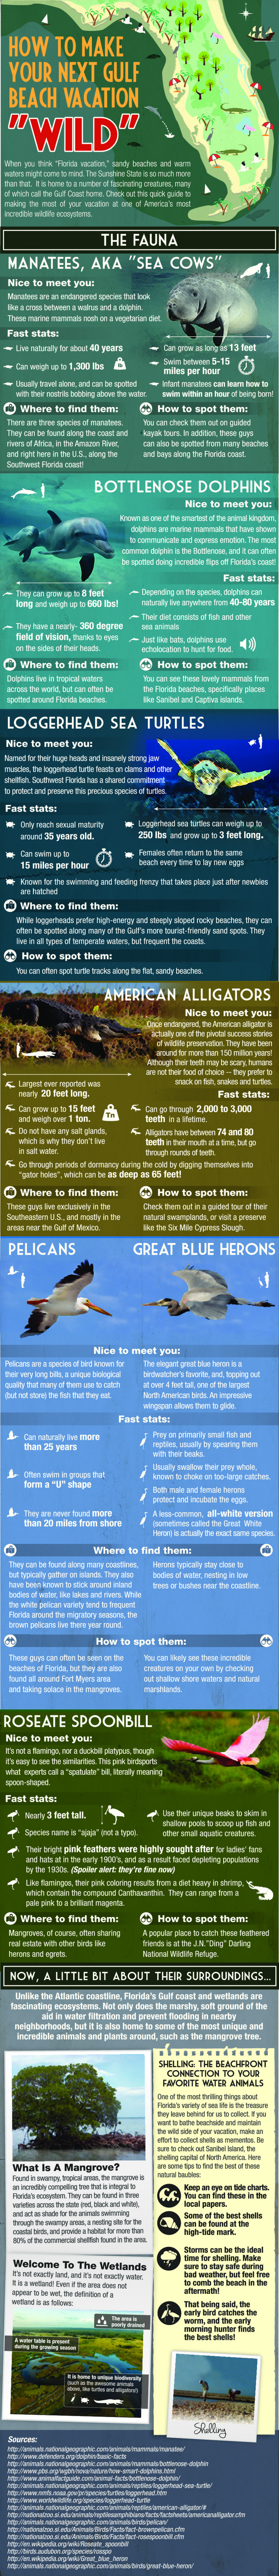 How To Make Your Next Beach Vacation Wild Infographic